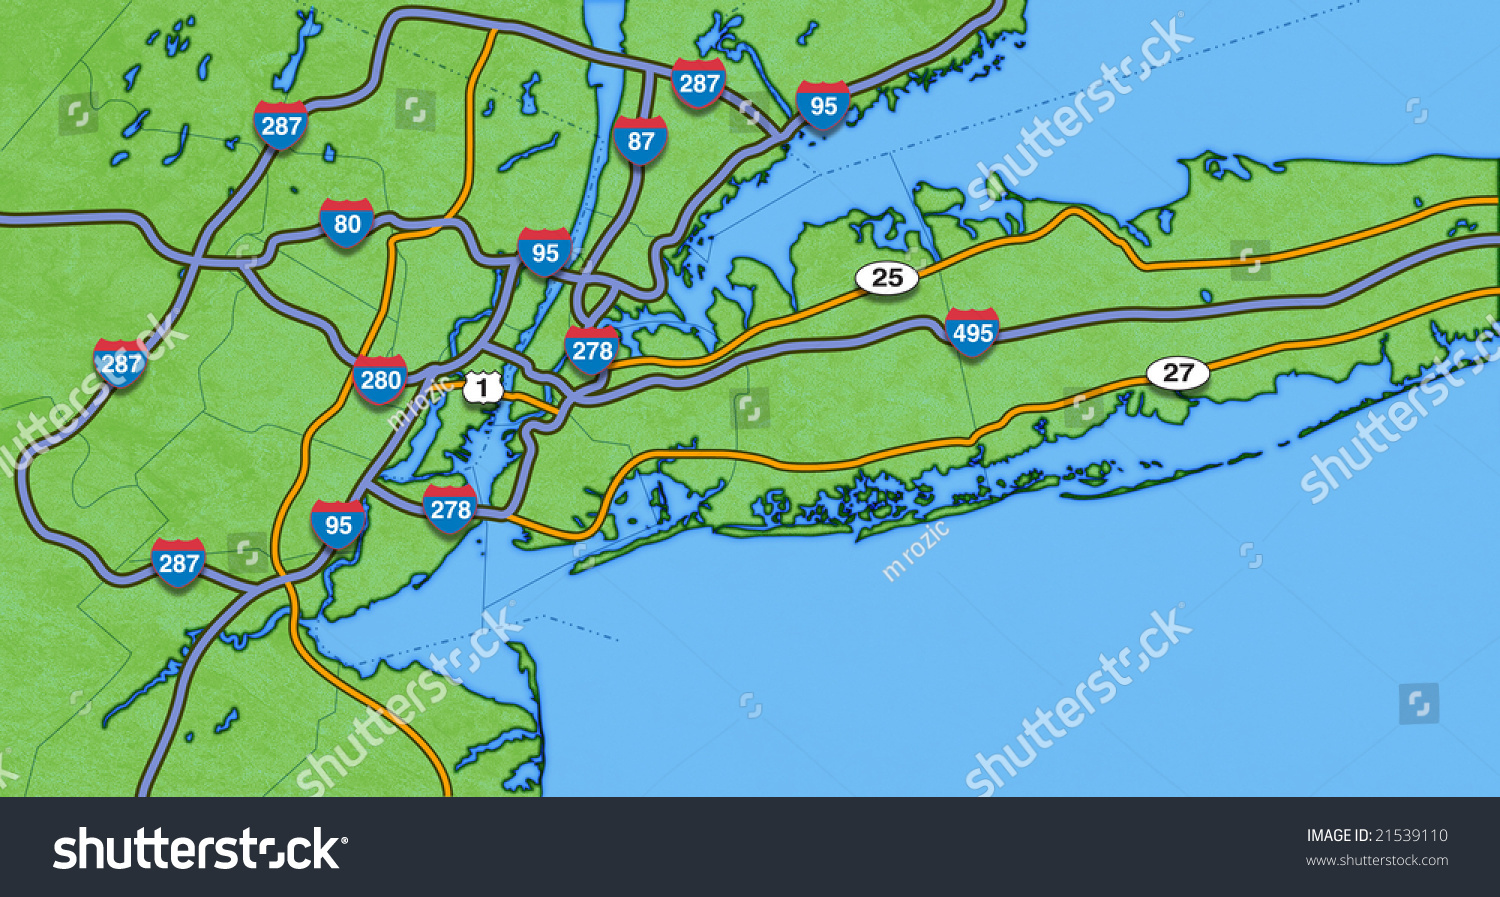 Map Of New York City And Surrounding AreaReady For